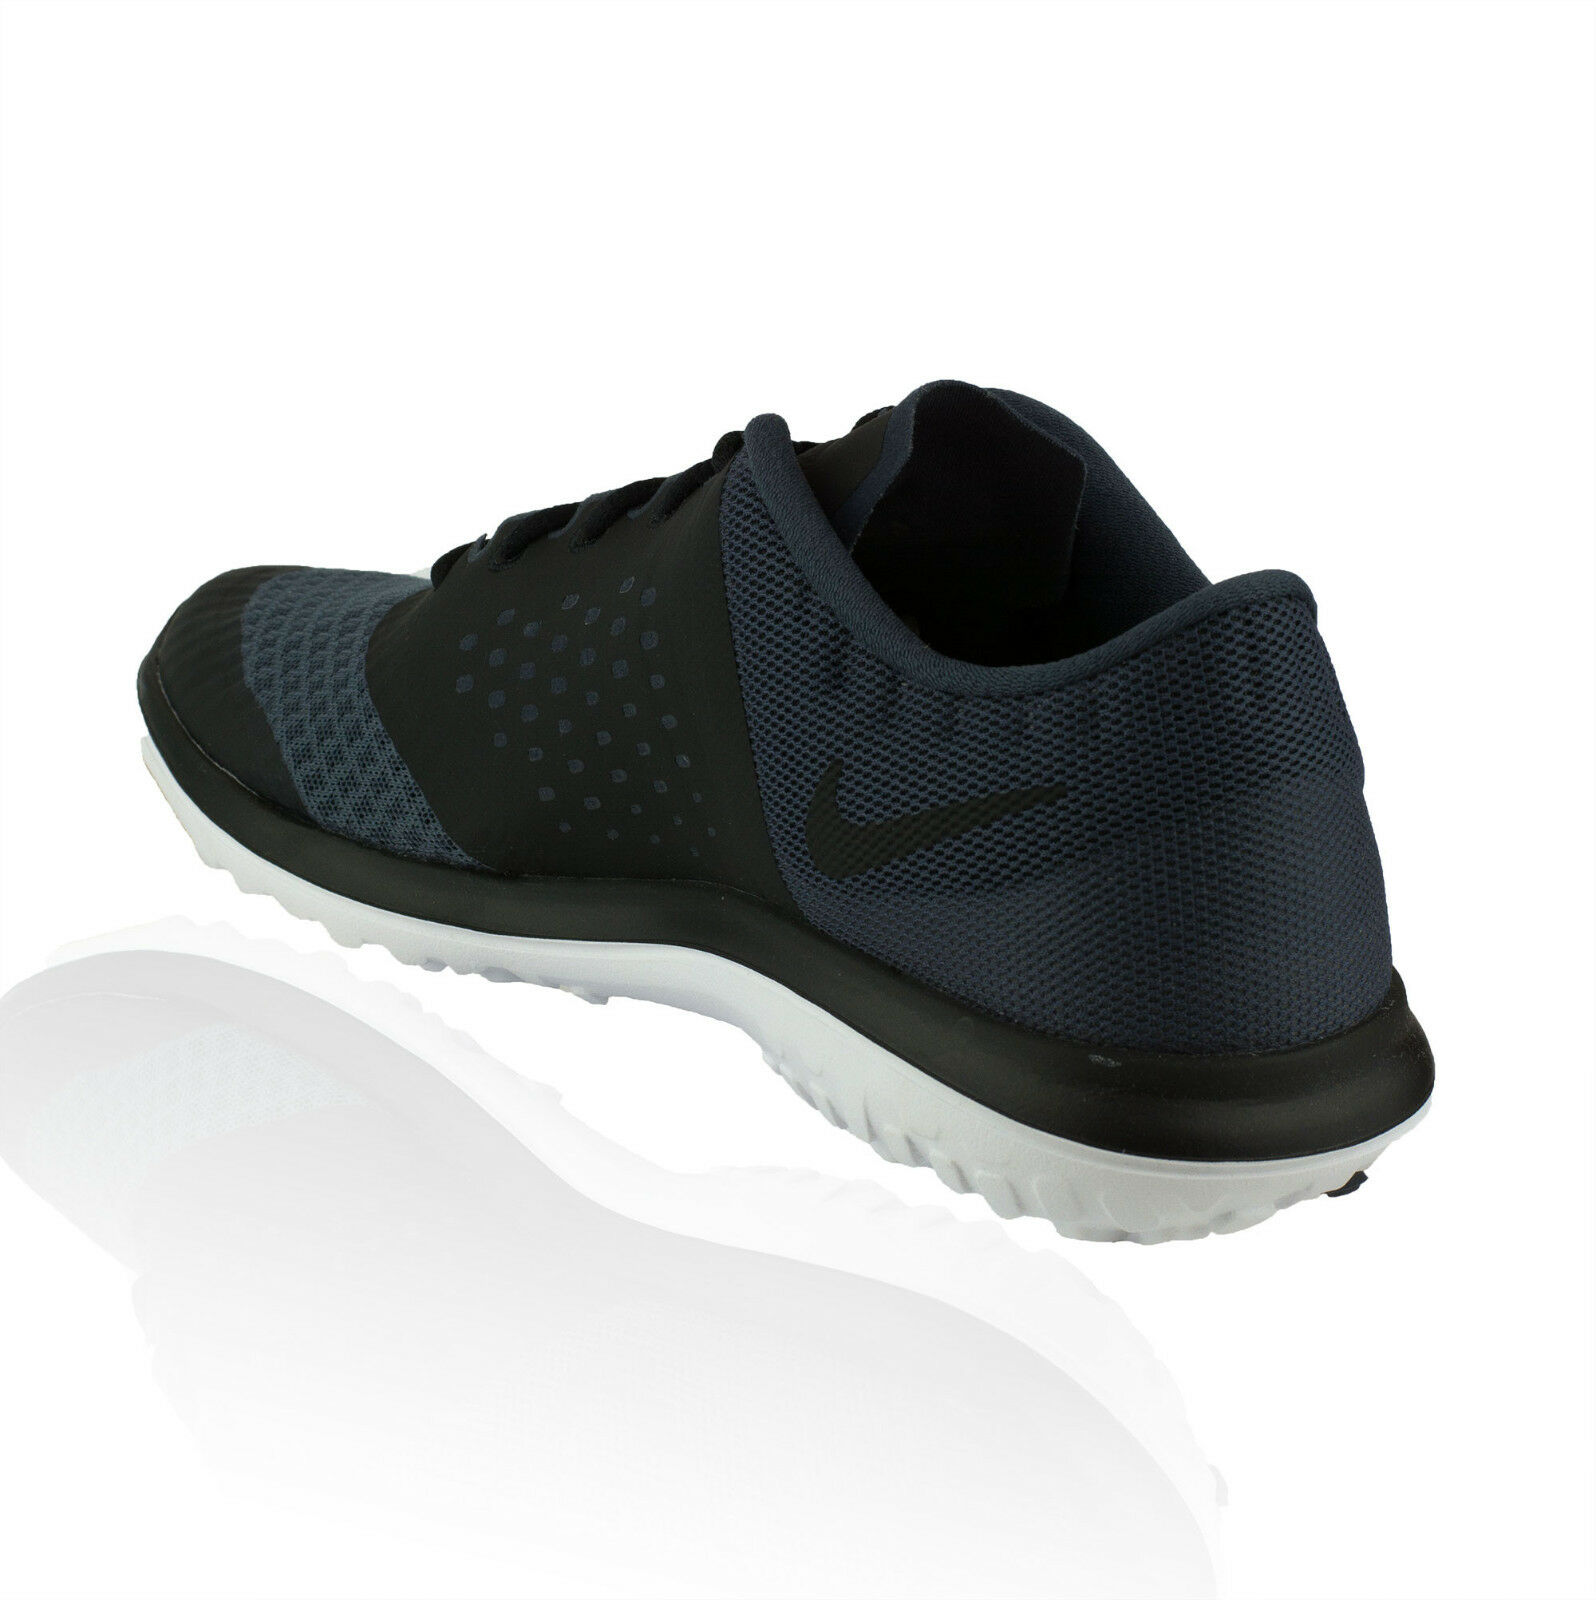 Nike Men's FS Lite Run 2 DarkMagnet Grey  Black-White